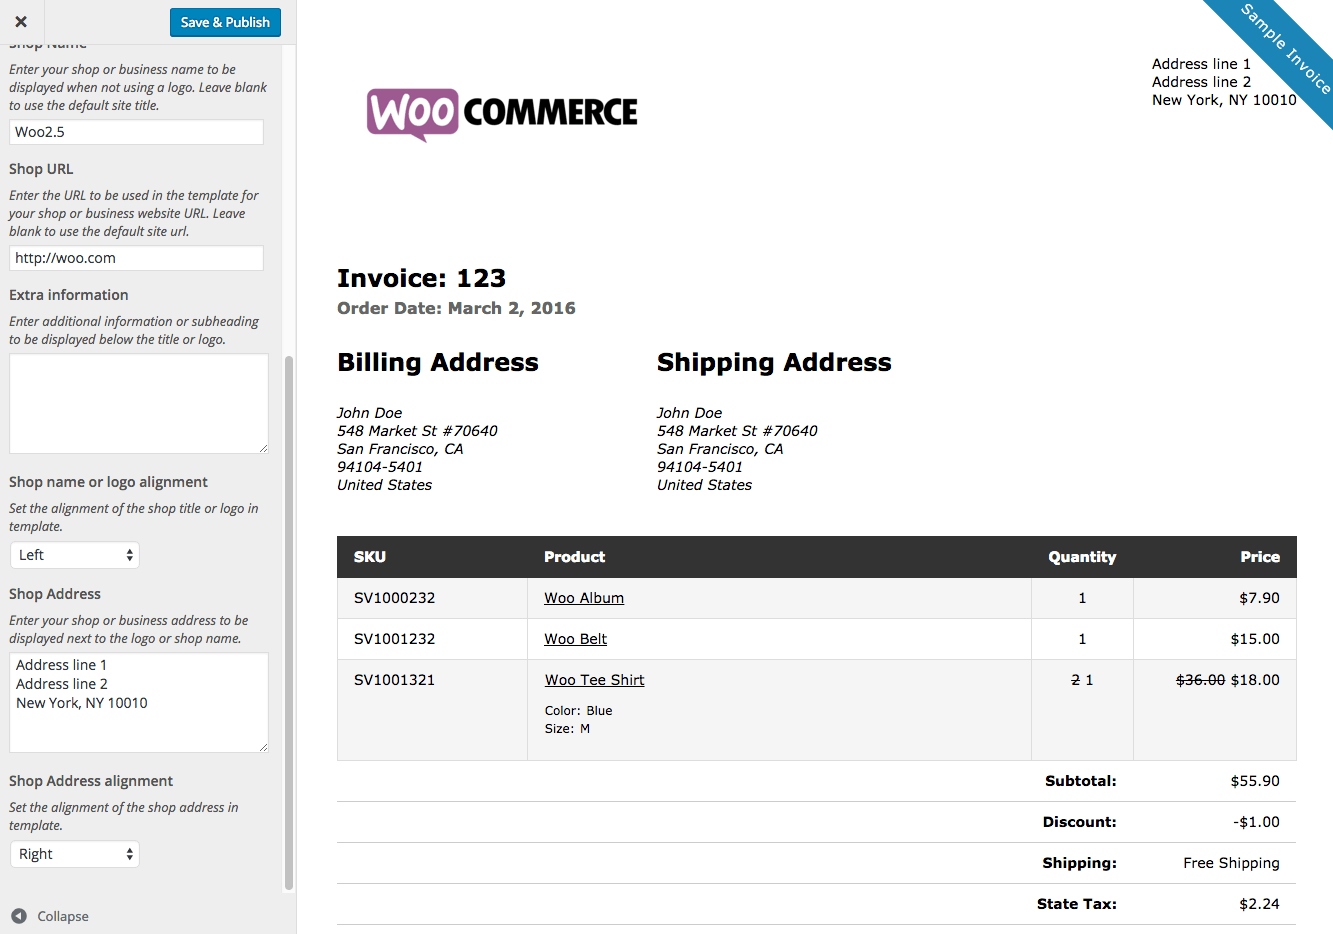 Hucareus  Scenic Woocommerce Print Invoices Amp Packing Lists  Woocommerce Docs With Interesting Woocommerce Print Invoices  Packing Lists Customizer With Cool Write Invoice Also Auto Invoices In Addition Invoice On Line And Invoice Template For Google Drive As Well As Sample Invoice Cover Letter Additionally Express Invoices From Docswoocommercecom With Hucareus  Interesting Woocommerce Print Invoices Amp Packing Lists  Woocommerce Docs With Cool Woocommerce Print Invoices  Packing Lists Customizer And Scenic Write Invoice Also Auto Invoices In Addition Invoice On Line From Docswoocommercecom